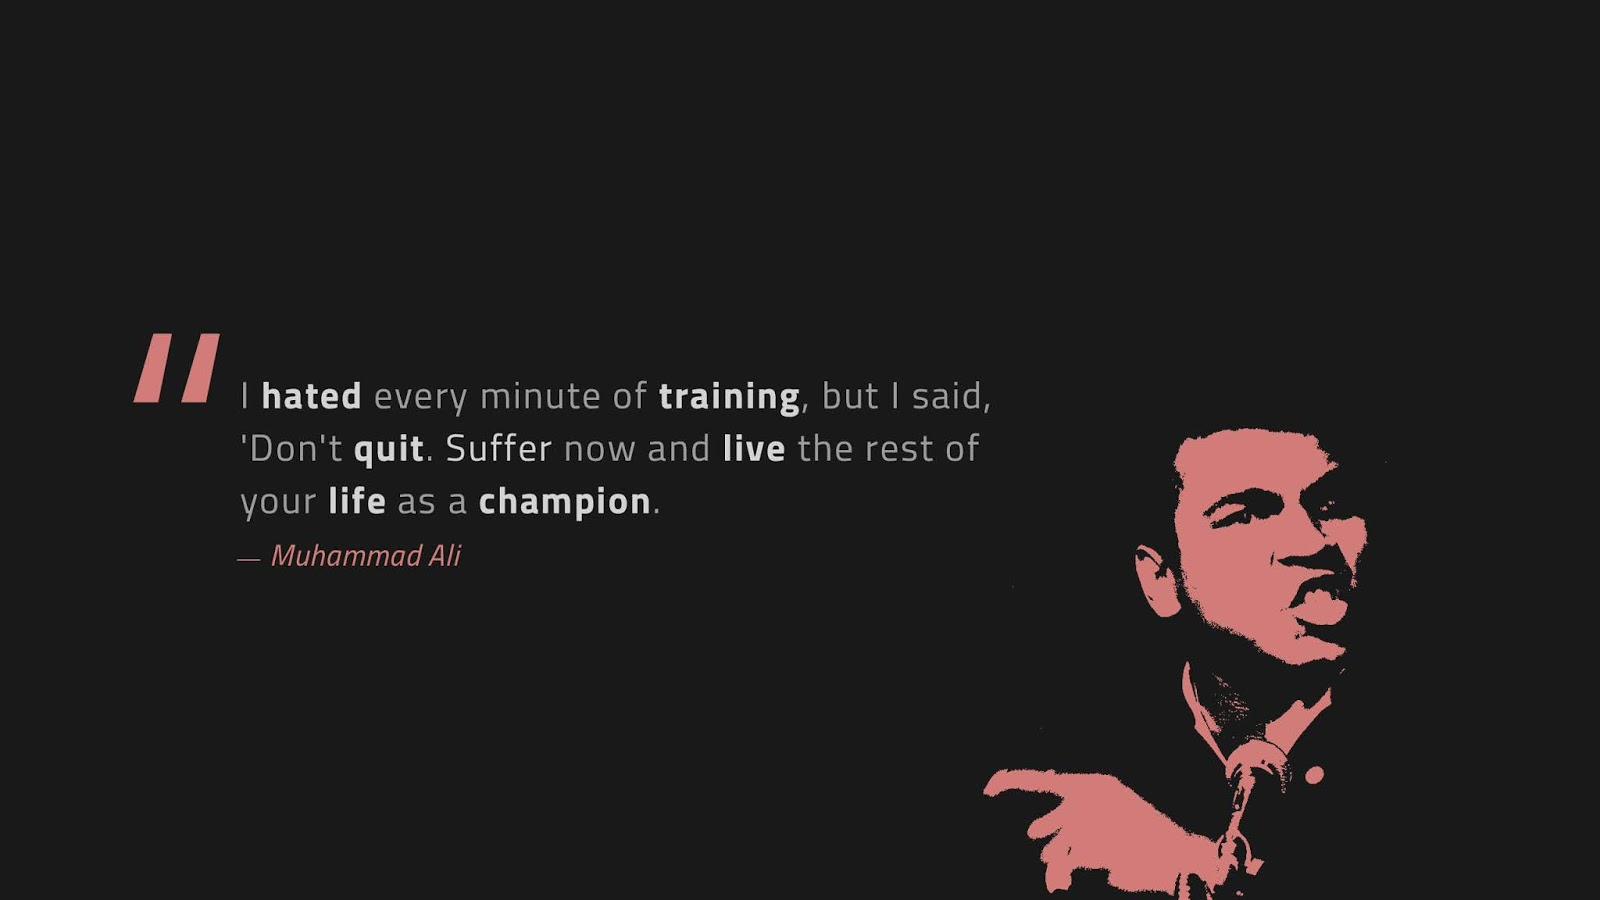 Champion, Don't Quit, Live Life, Mohammad Ali, Popular Quotes, HD, Typography